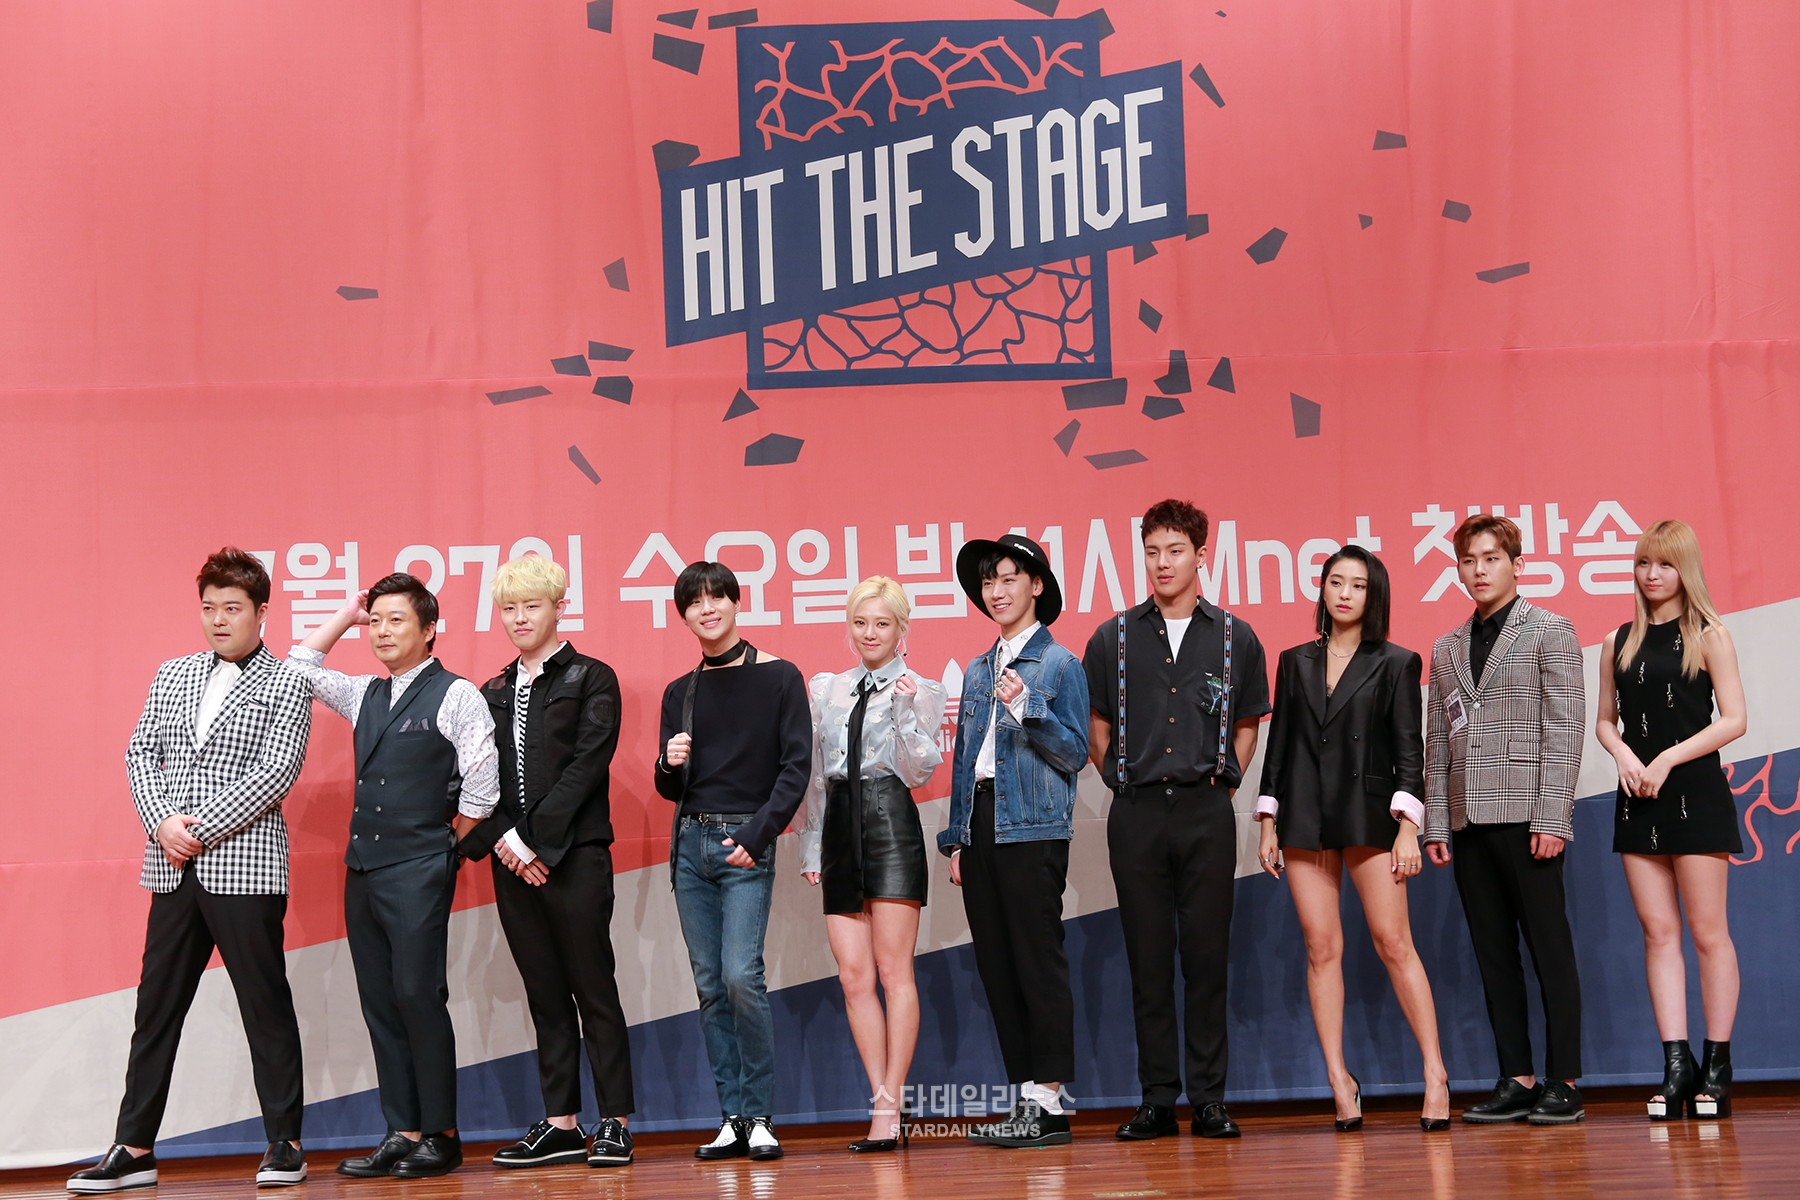 """Hit The Stage"" Contestants Talk About Members' Support And Goals For The Show"